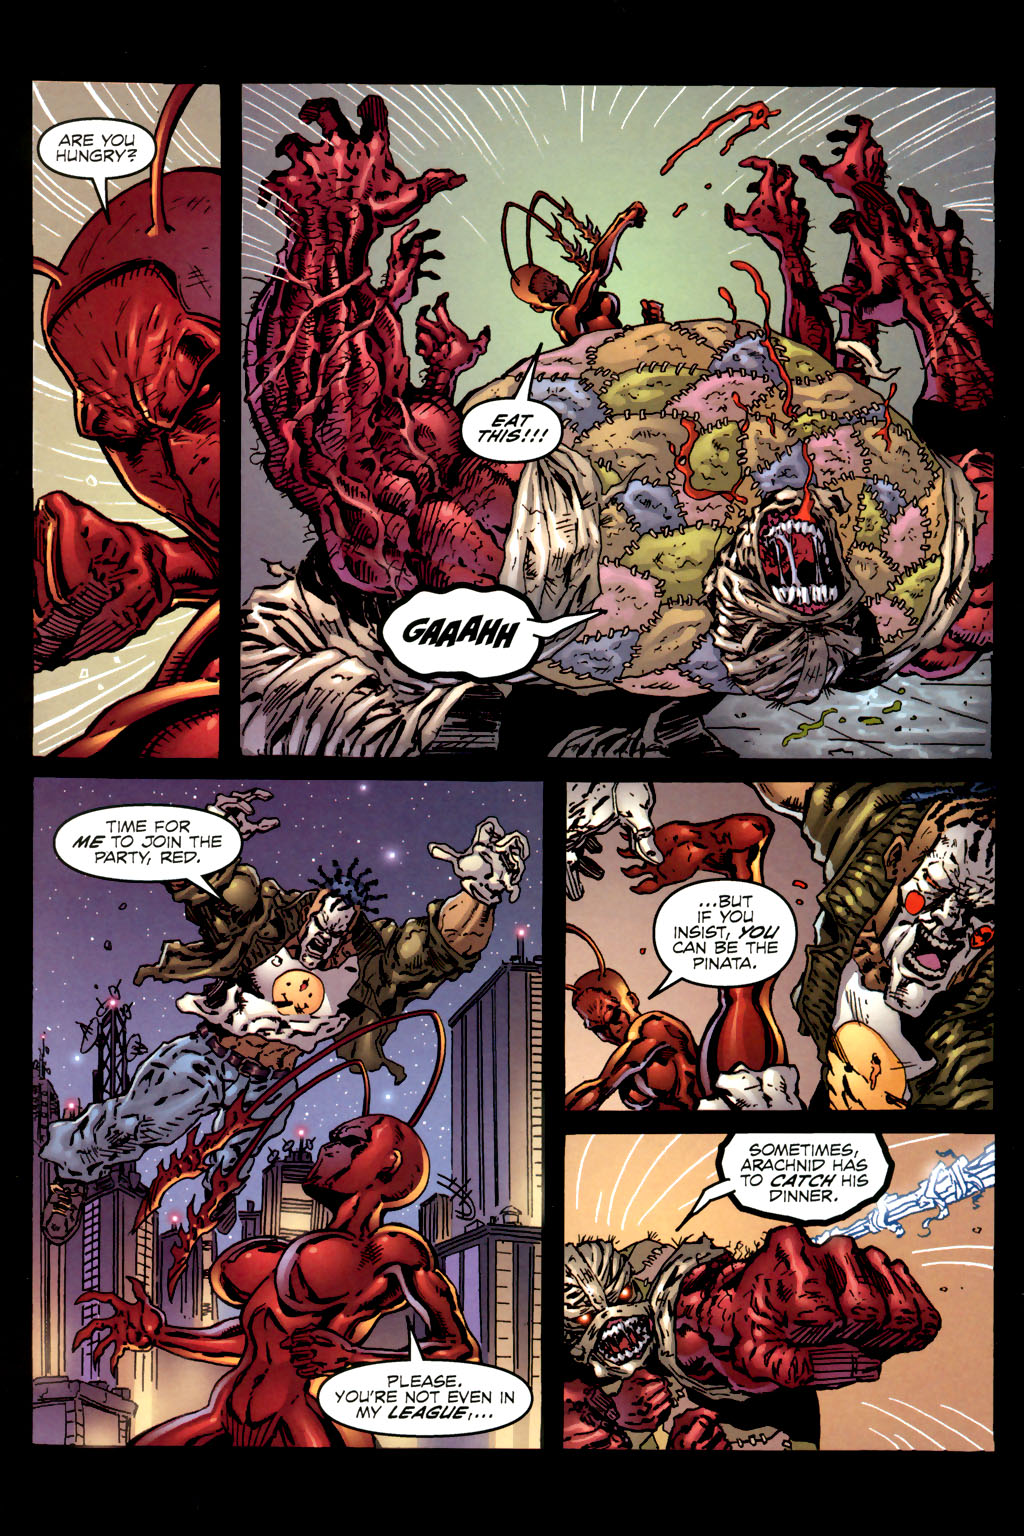 Read online Ant comic -  Issue #2 - 9